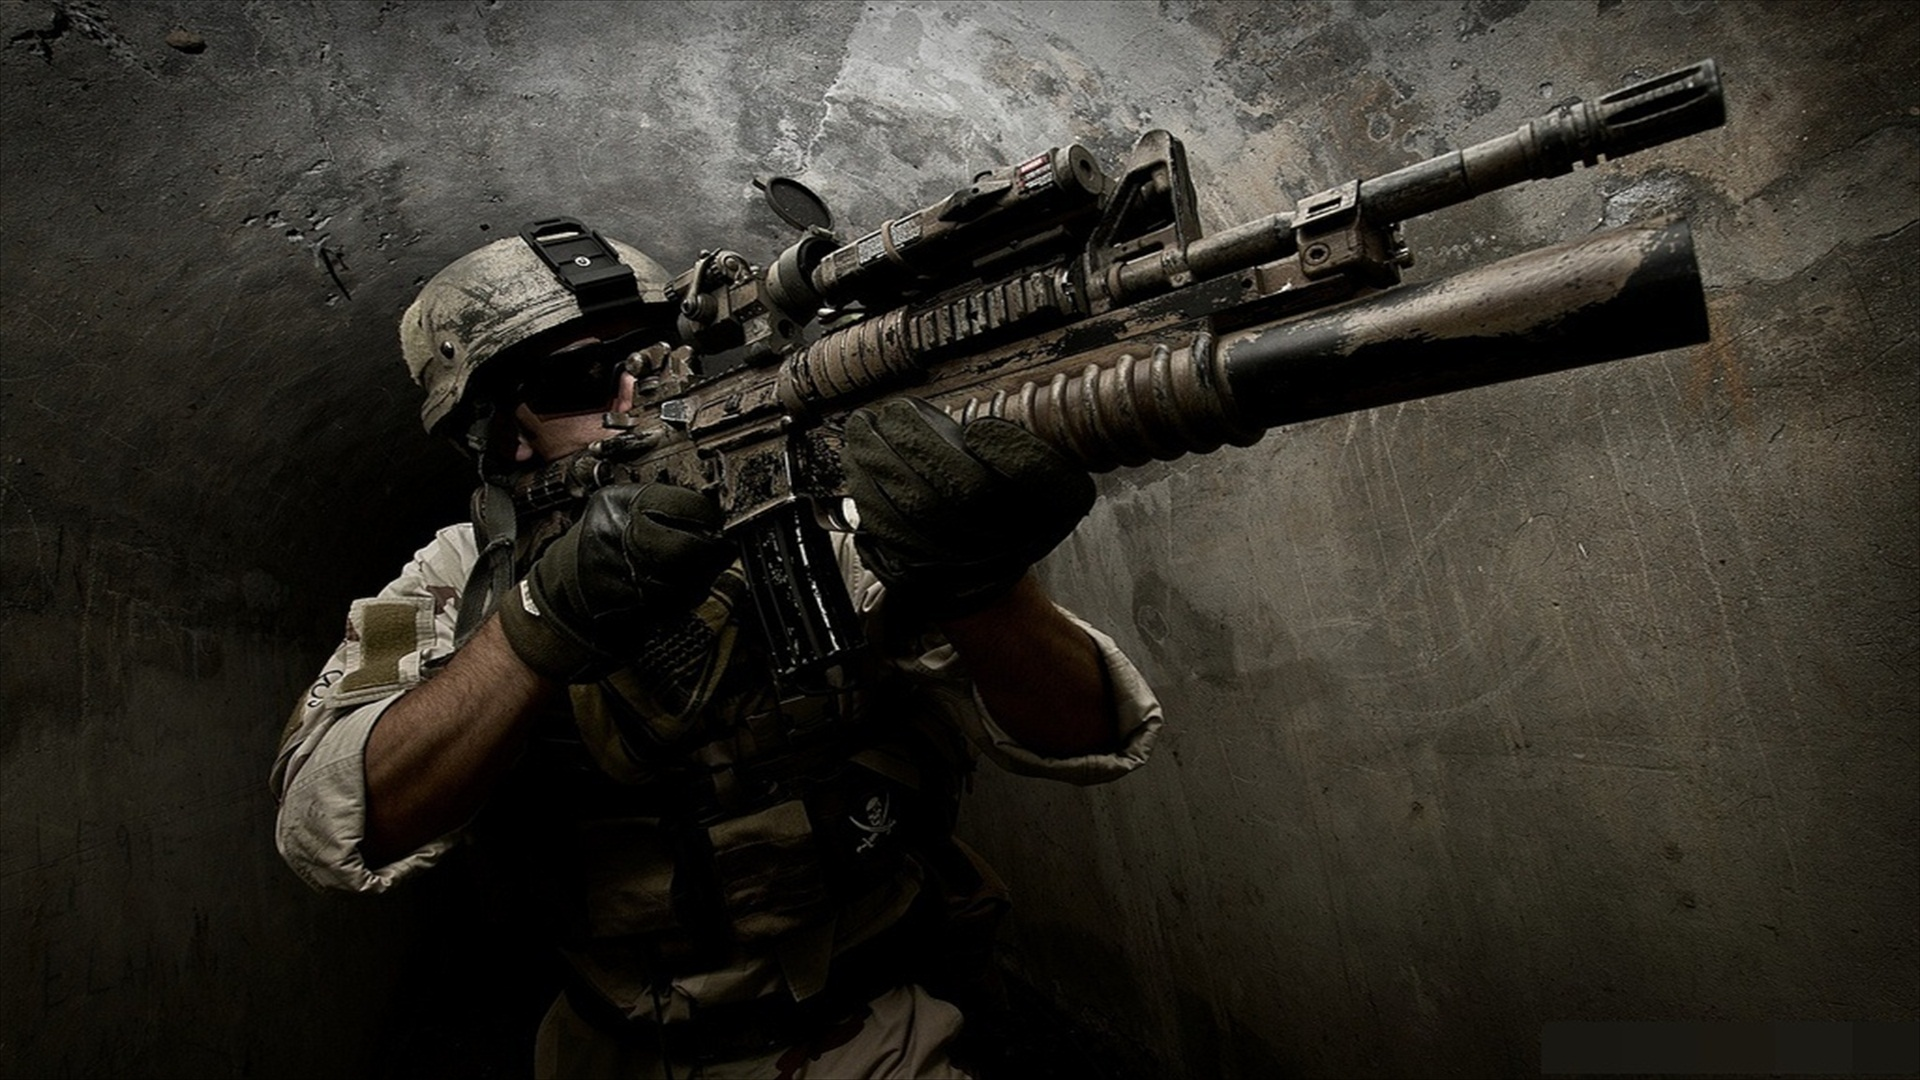 Assault Rifle Full HD Wallpaper and Background Image 1920x1080 ID:141898